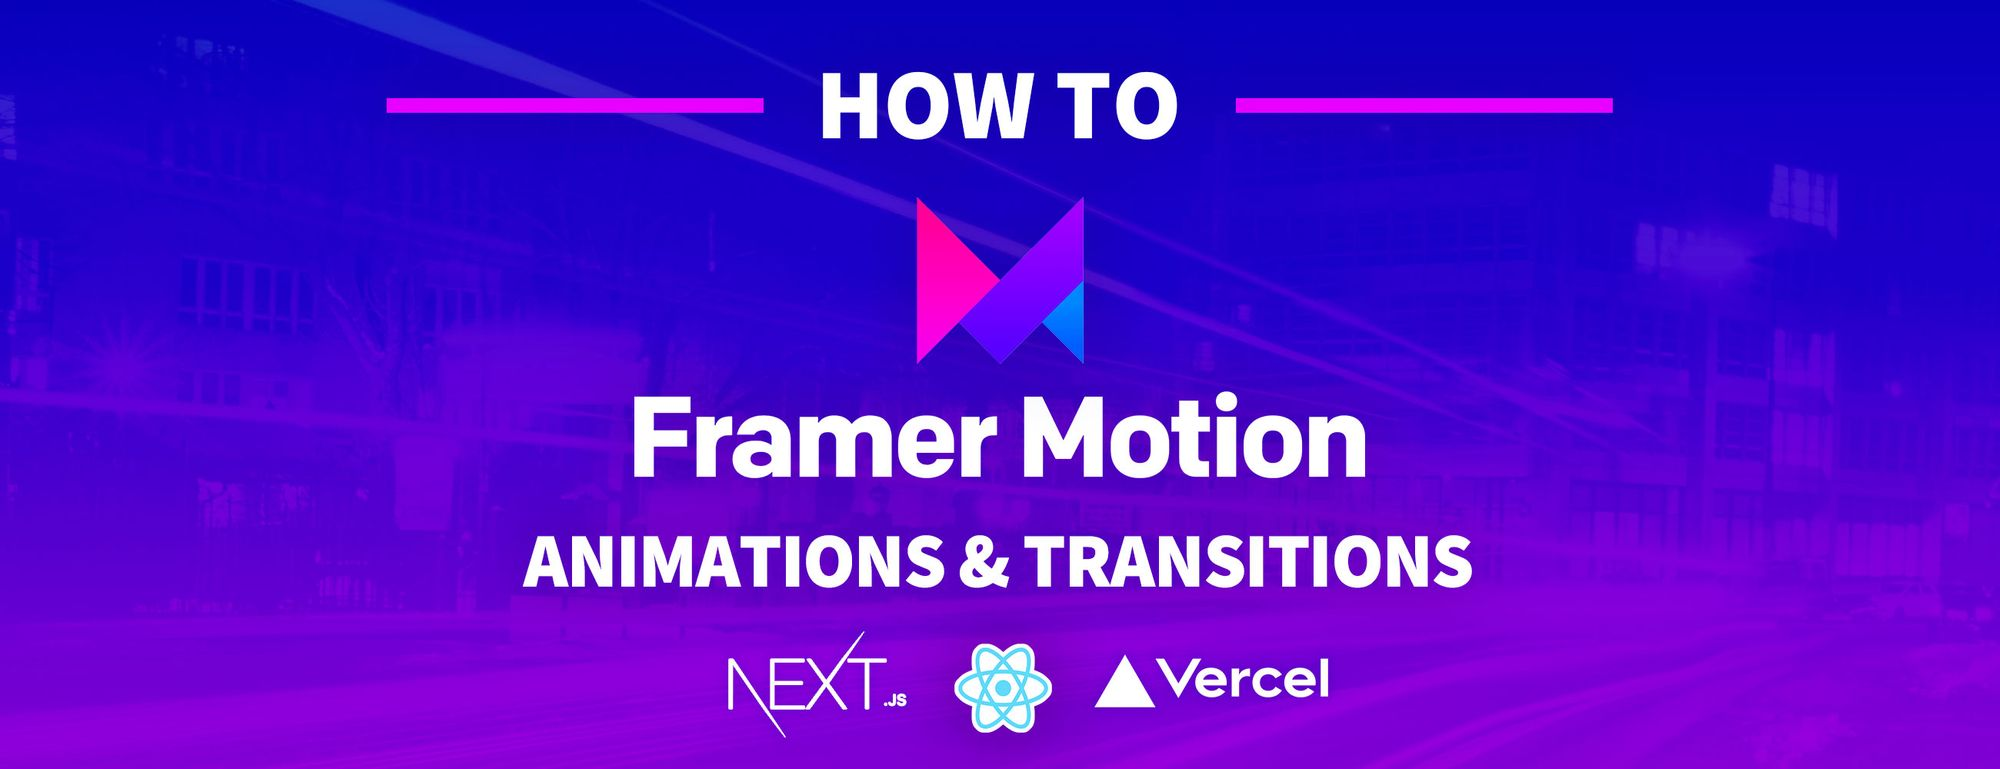 How to Add Interactive Animations and Page Transitions to a Next.js Web App with Framer Motion